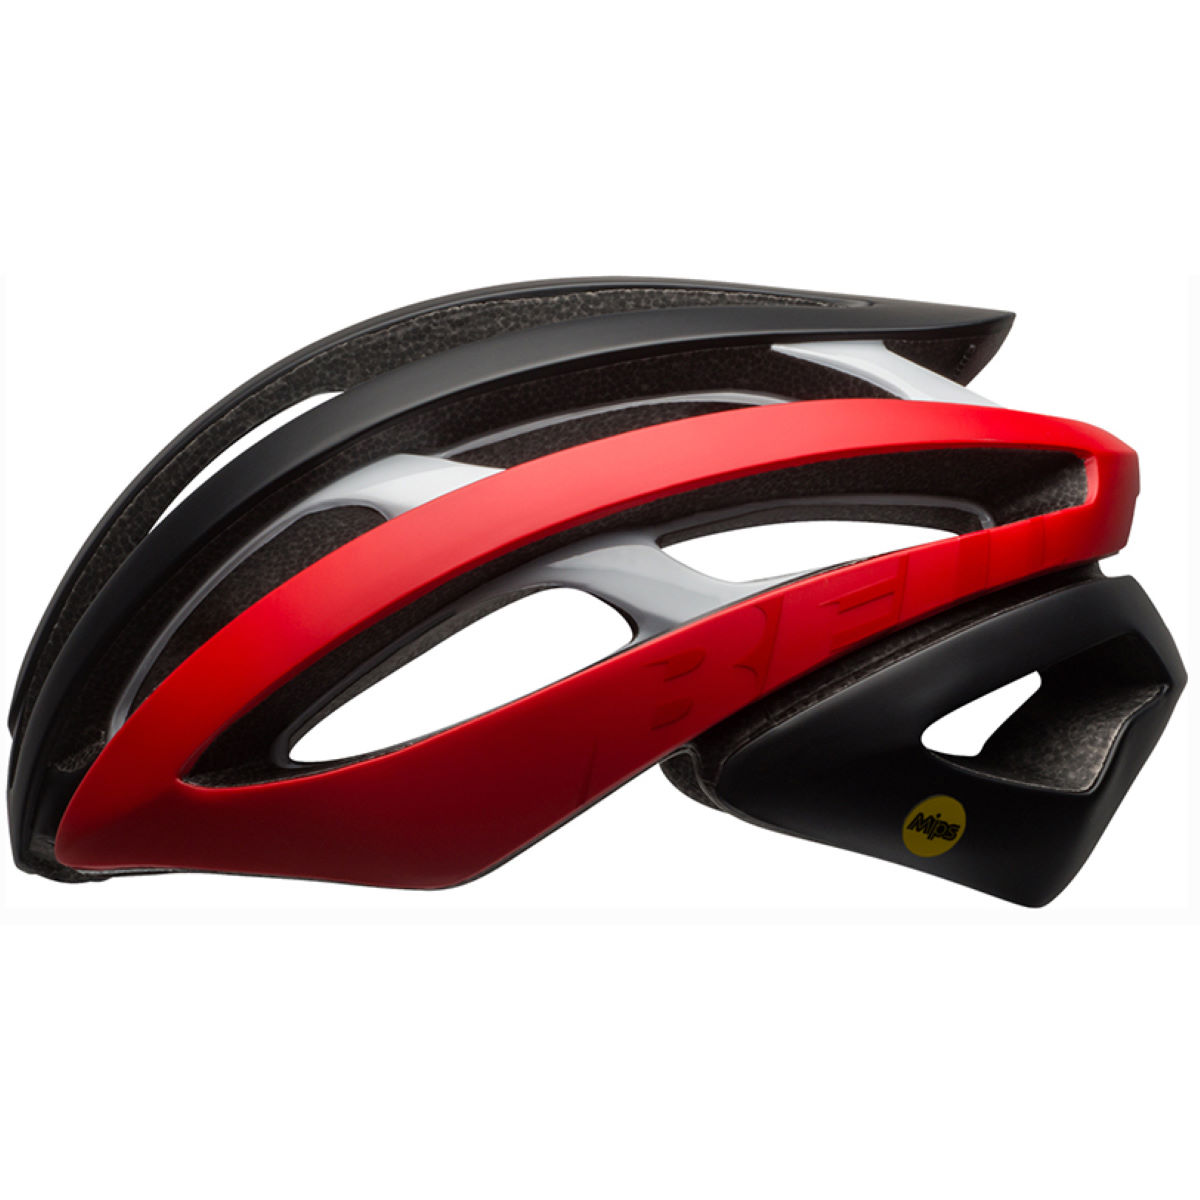 Casque Bell Zephyr MIPS - S Black/Red/White Casques